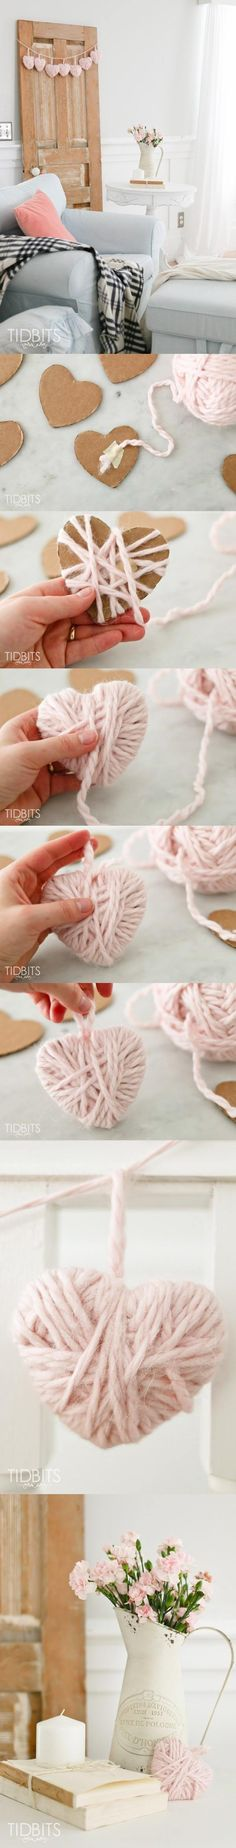 DIY Yarn Heart